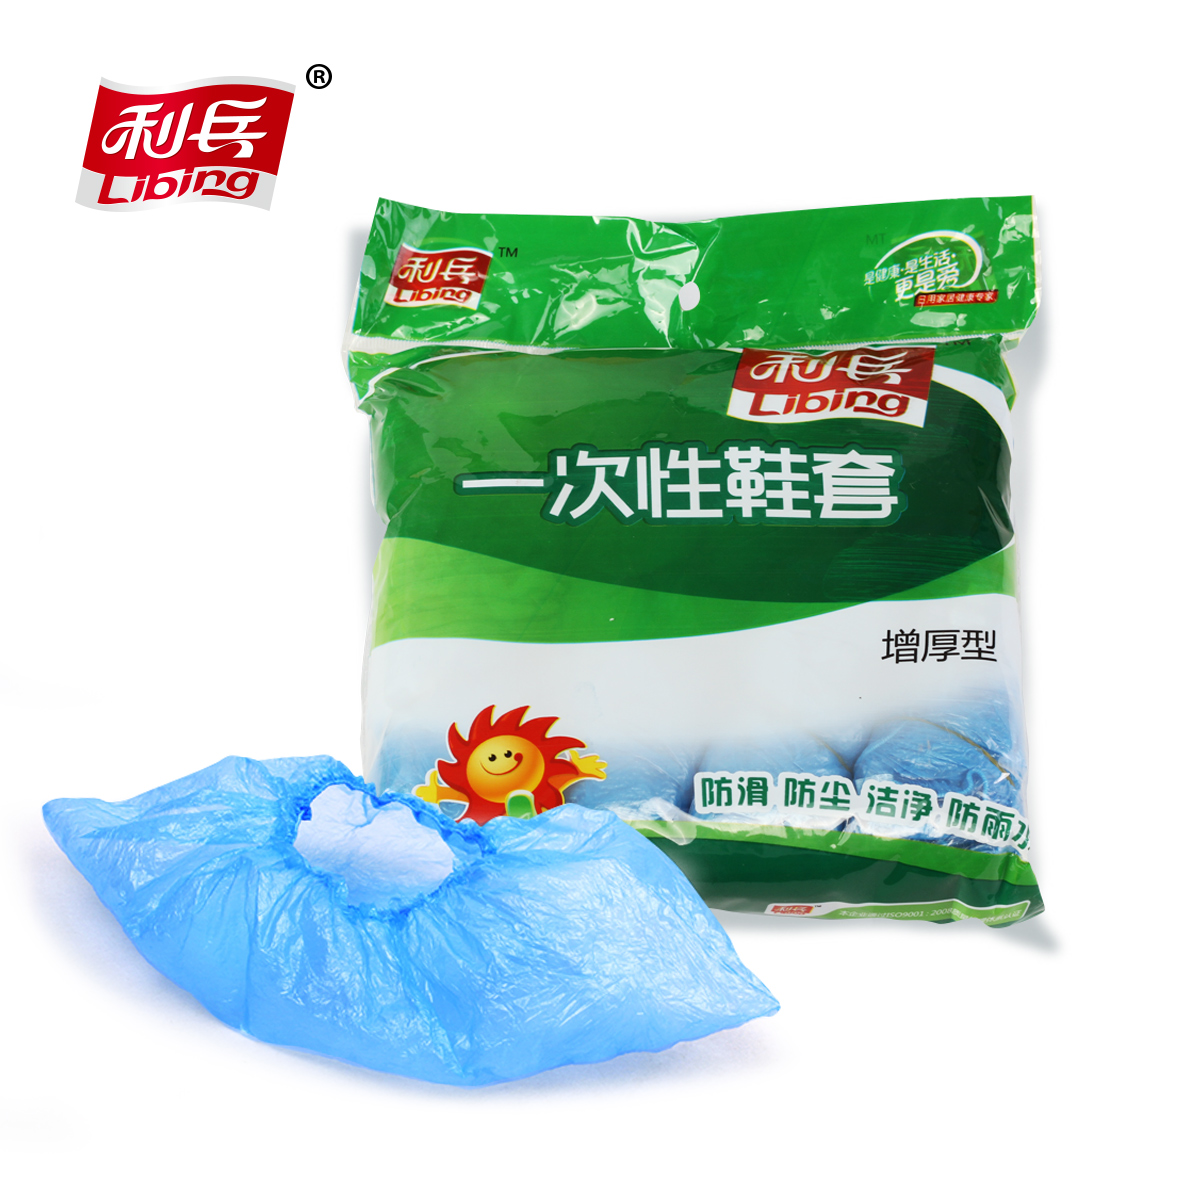 Bing lee waterproof disposable plastic shoe covers household dust and anti dirty 40 only 4 bags 160 only